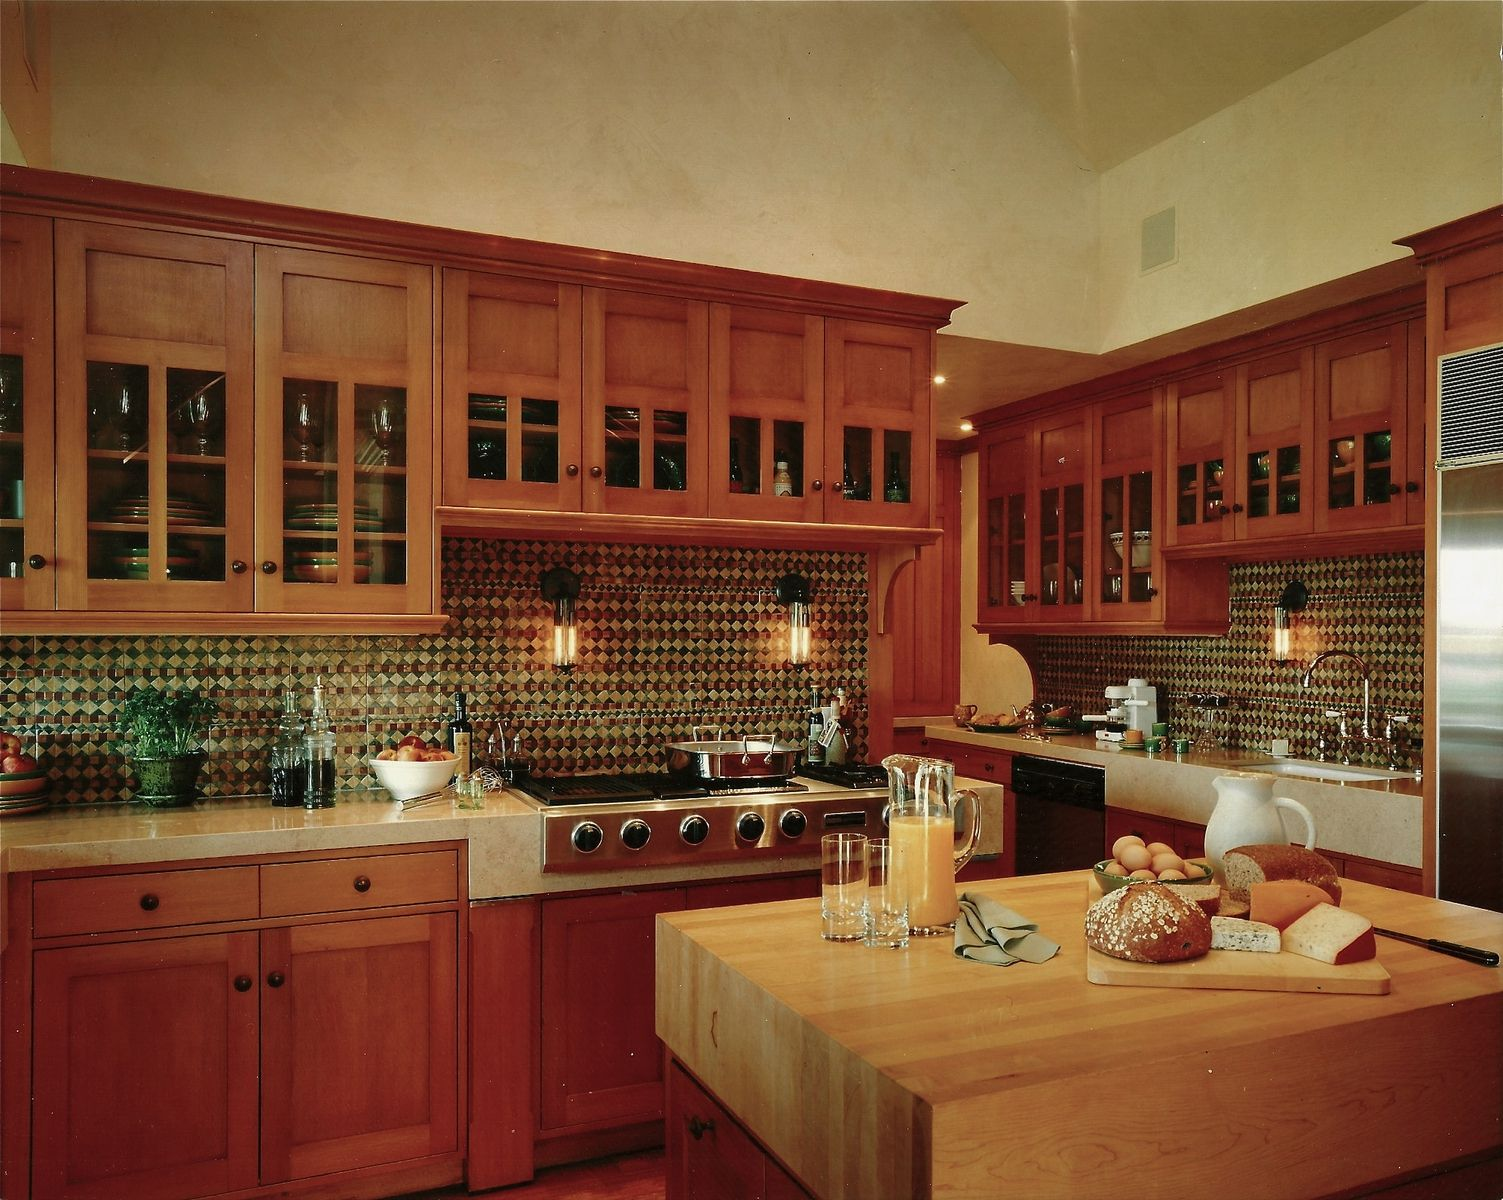 An Arts And Crafts Kitchen Custom Made By Steepleview Cabinetry